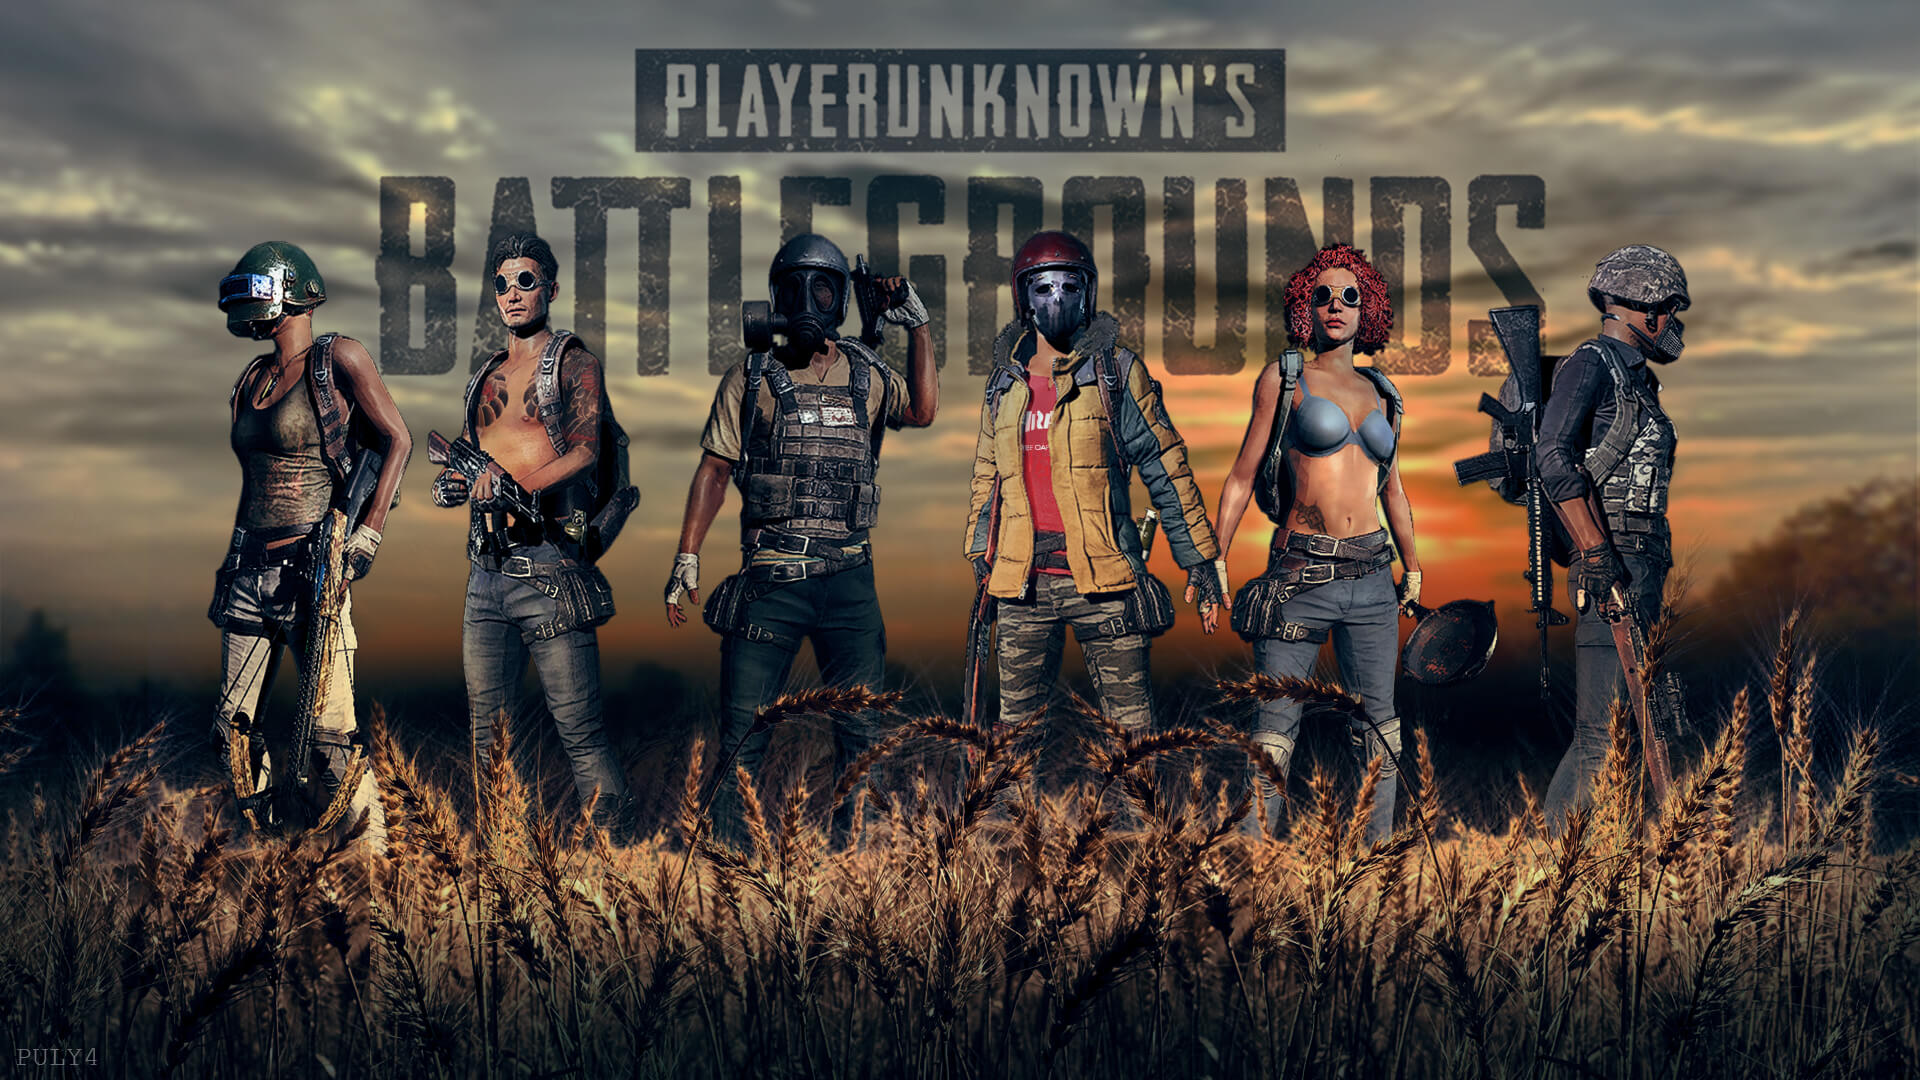 PlayerUnknown's Battlegrounds Passes 3 Million Concurrent Players